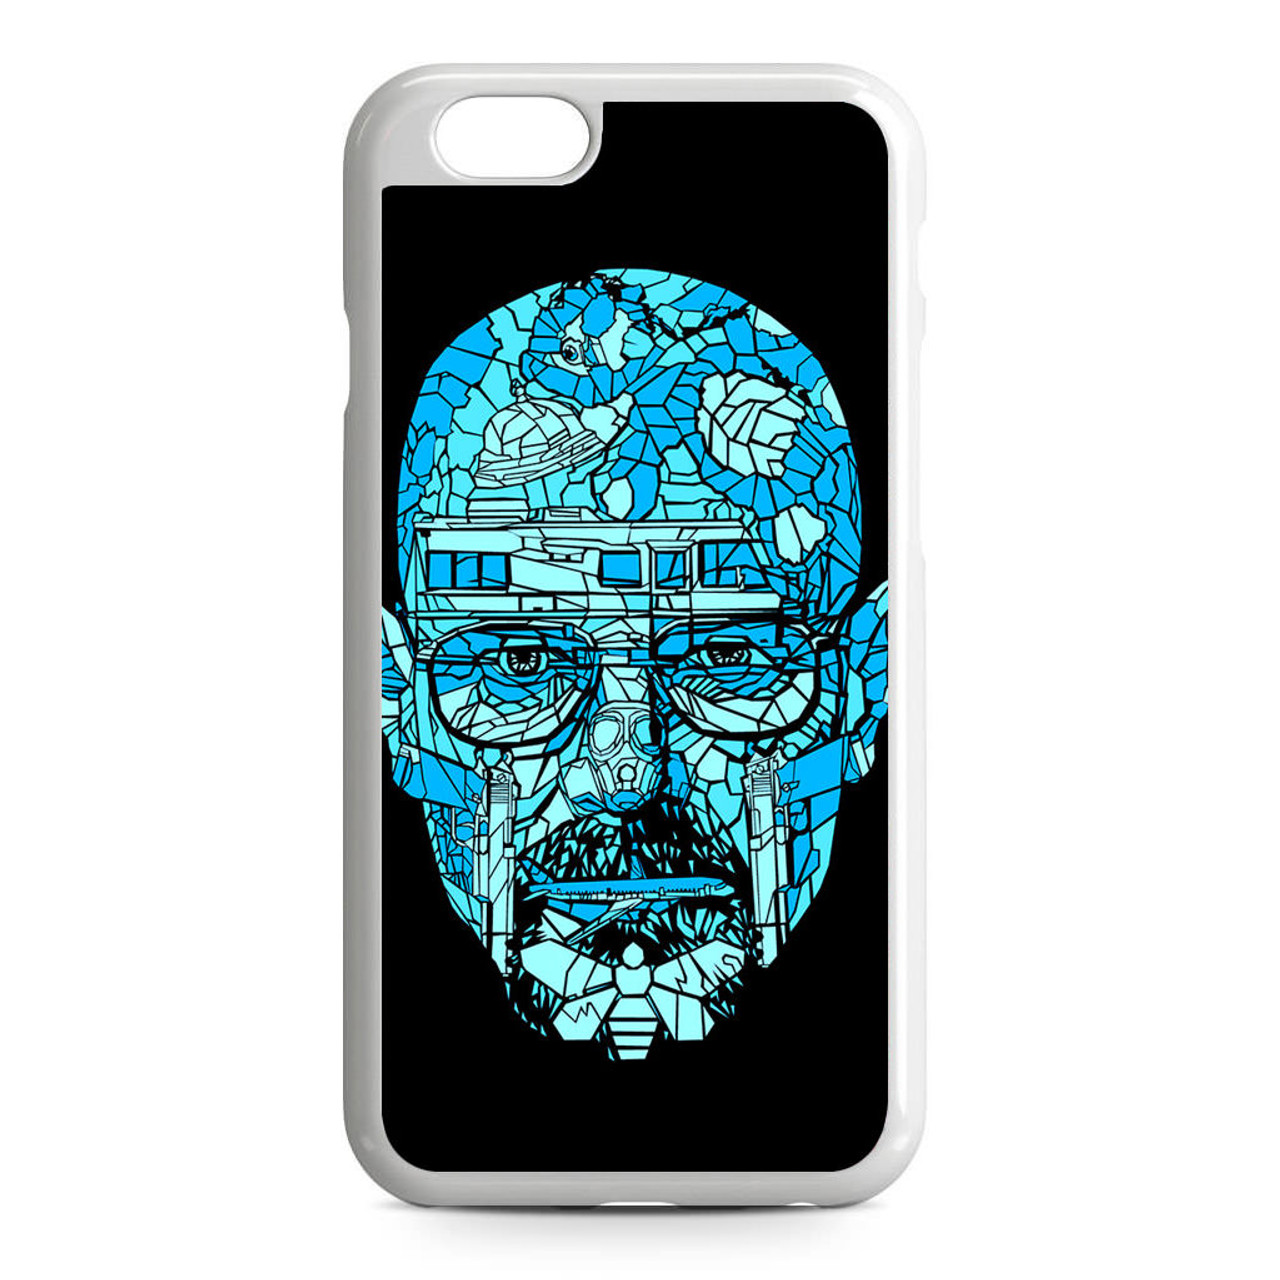 Breaking Bad All Bad Things iPhone 6/6S Case